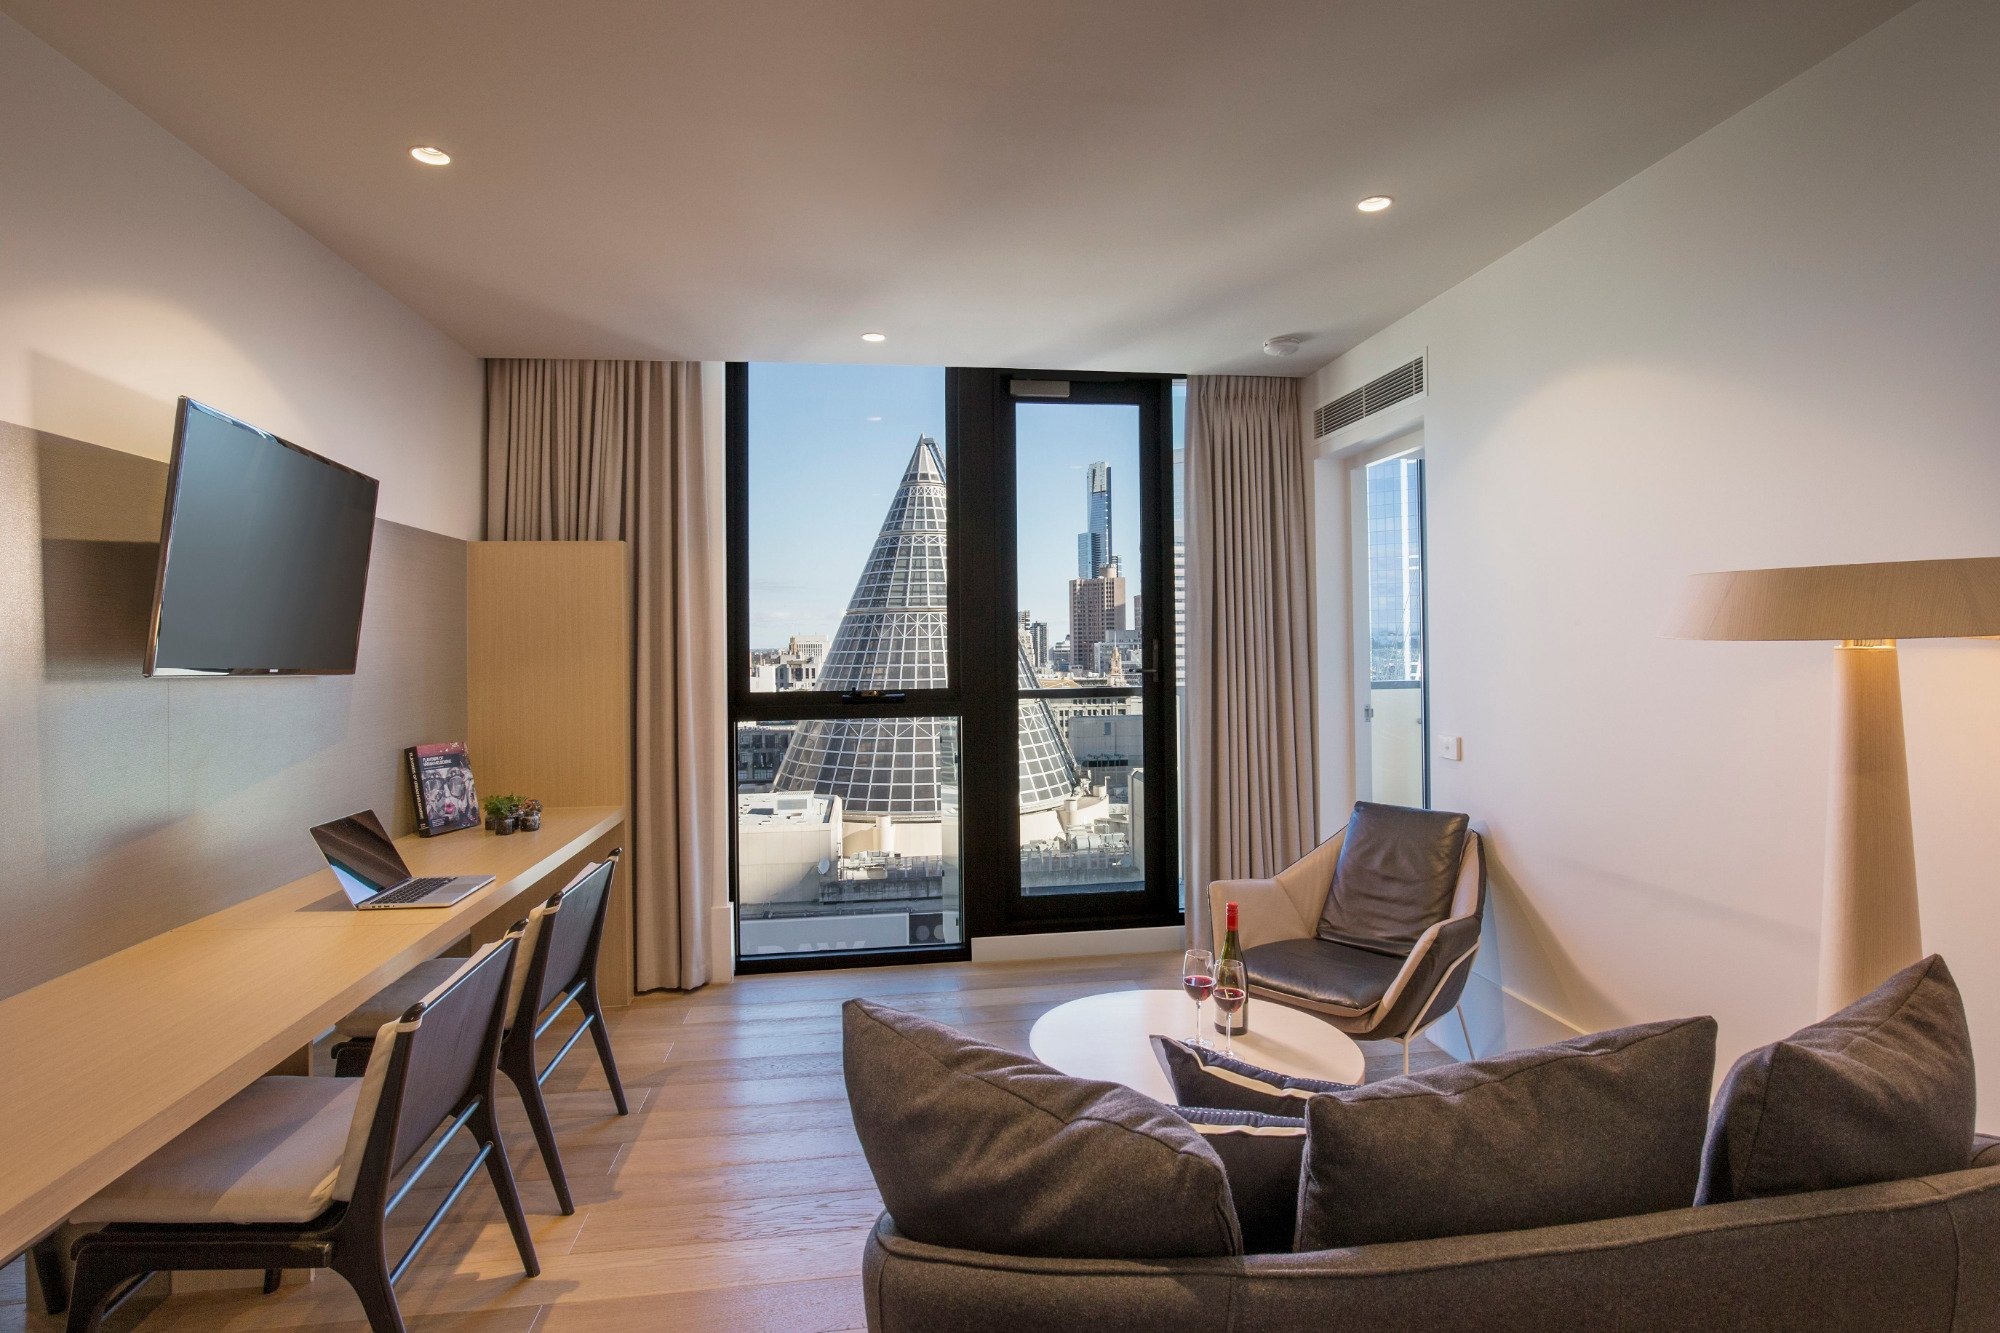 Brady hotels central melbourne updated 2017 hotel for 0 bedroom apartment